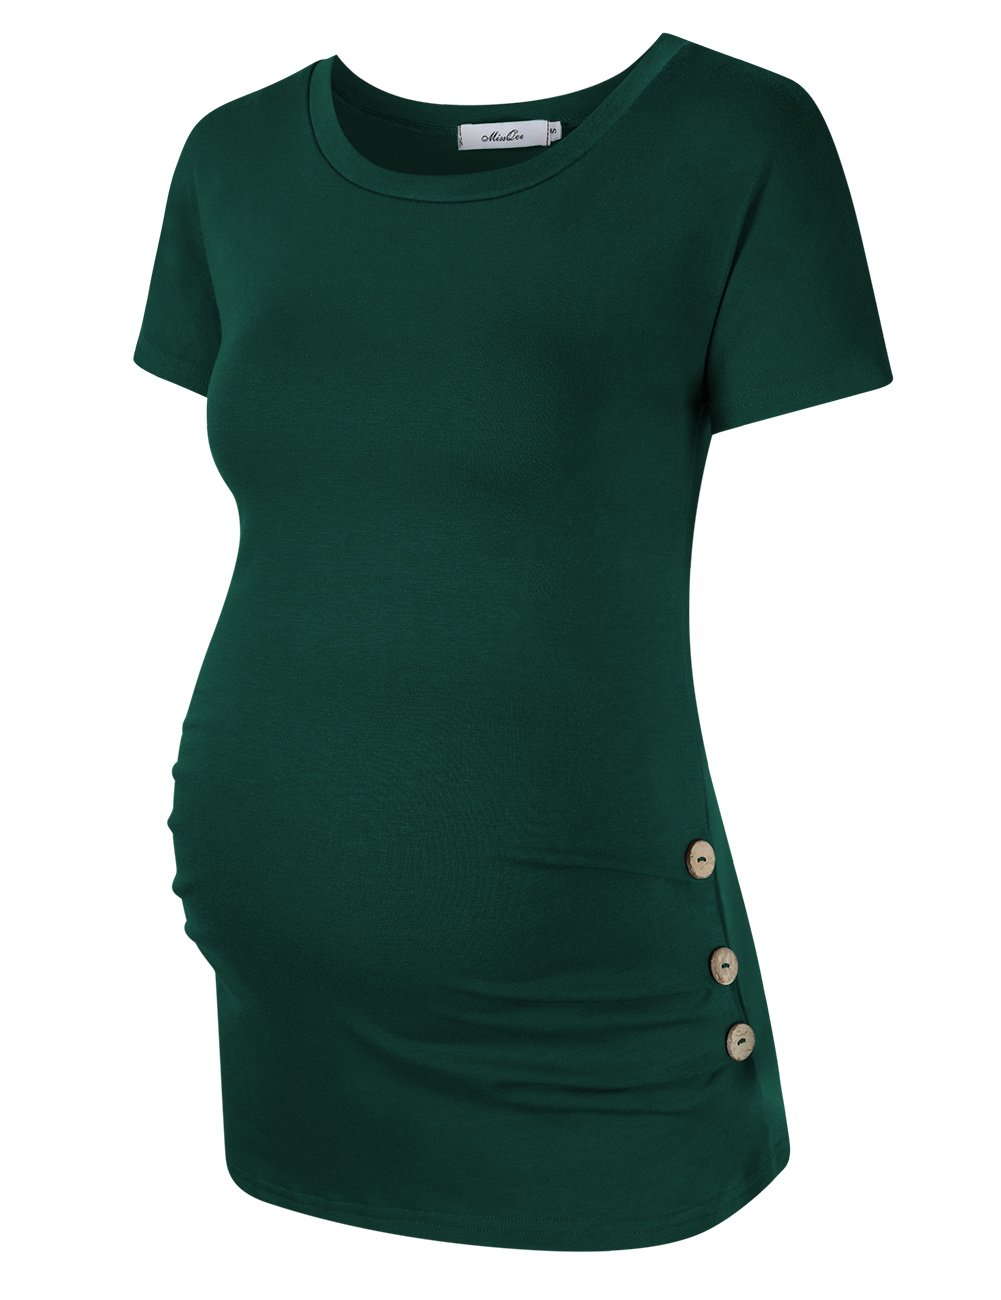 MissQee Maternity Shirt Side Button and Ruched Maternity Tunic Tops Maternity Short Sleeve T-Shirts (L,Green)